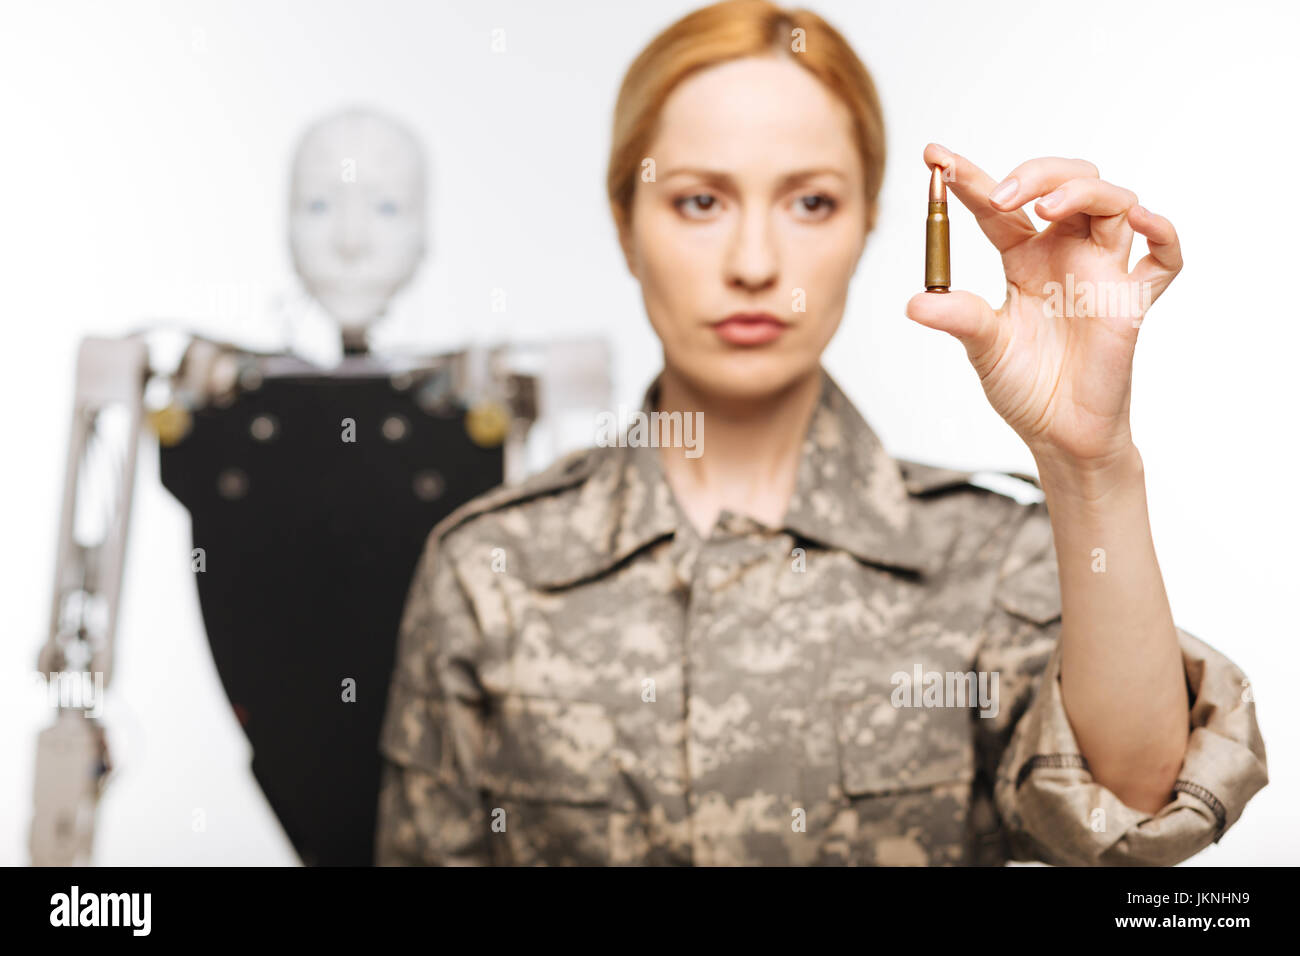 Resolute serious woman holding a bullet - Stock Image